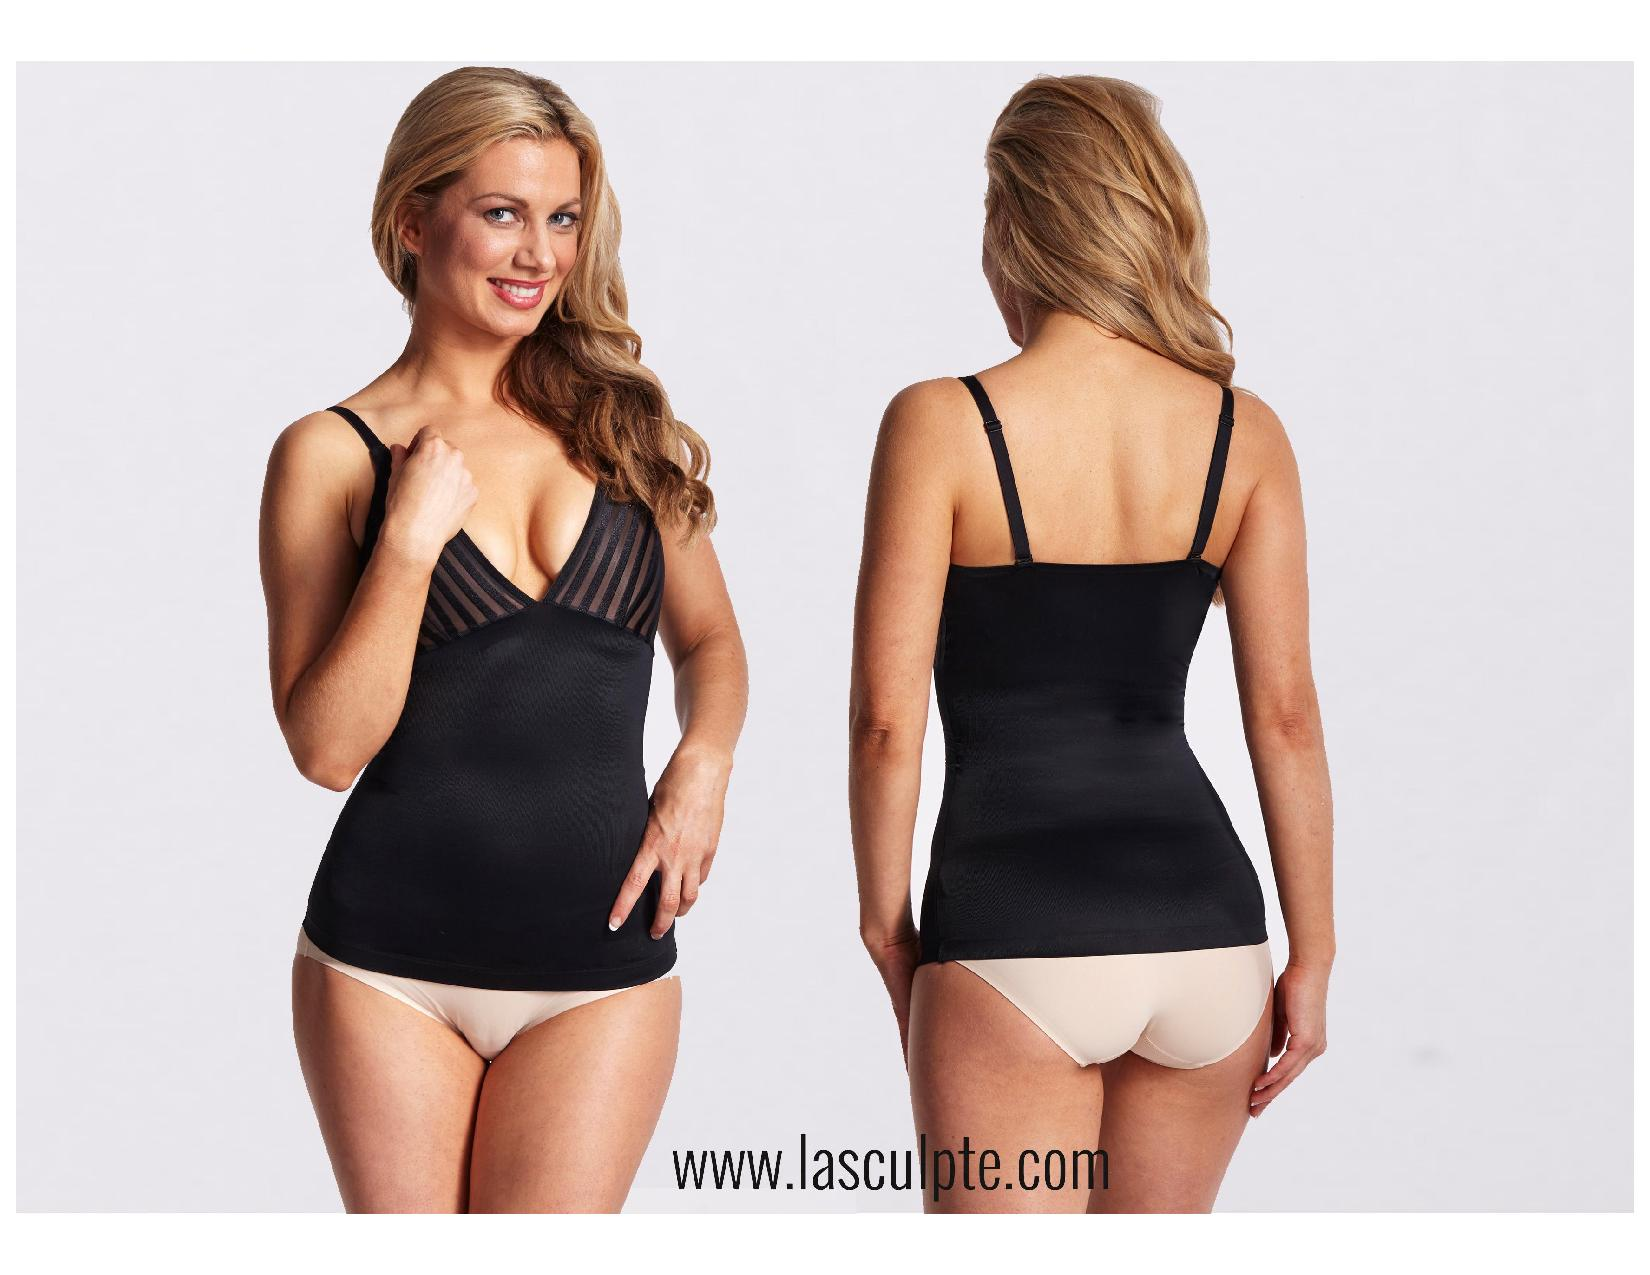 Lasculpte lookbook - Shapewear-page-007